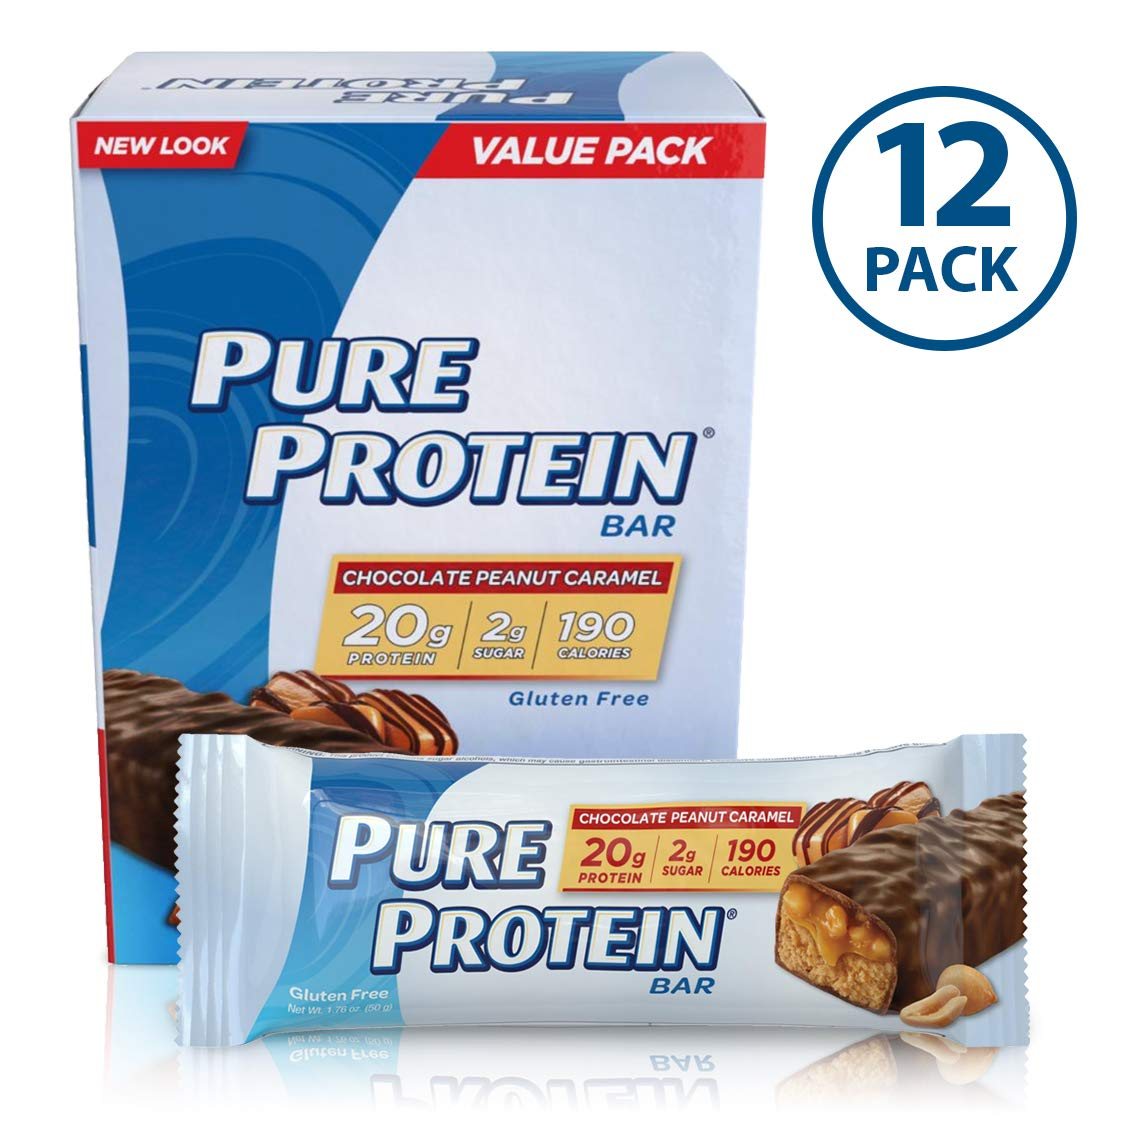 Pure Protein Bars, High Protein, Nutritious Snacks to Support Energy, Low Sugar, Gluten Free, Chocolate Peanut Caramel, 1.76oz, 12 Pack by Pure Protein